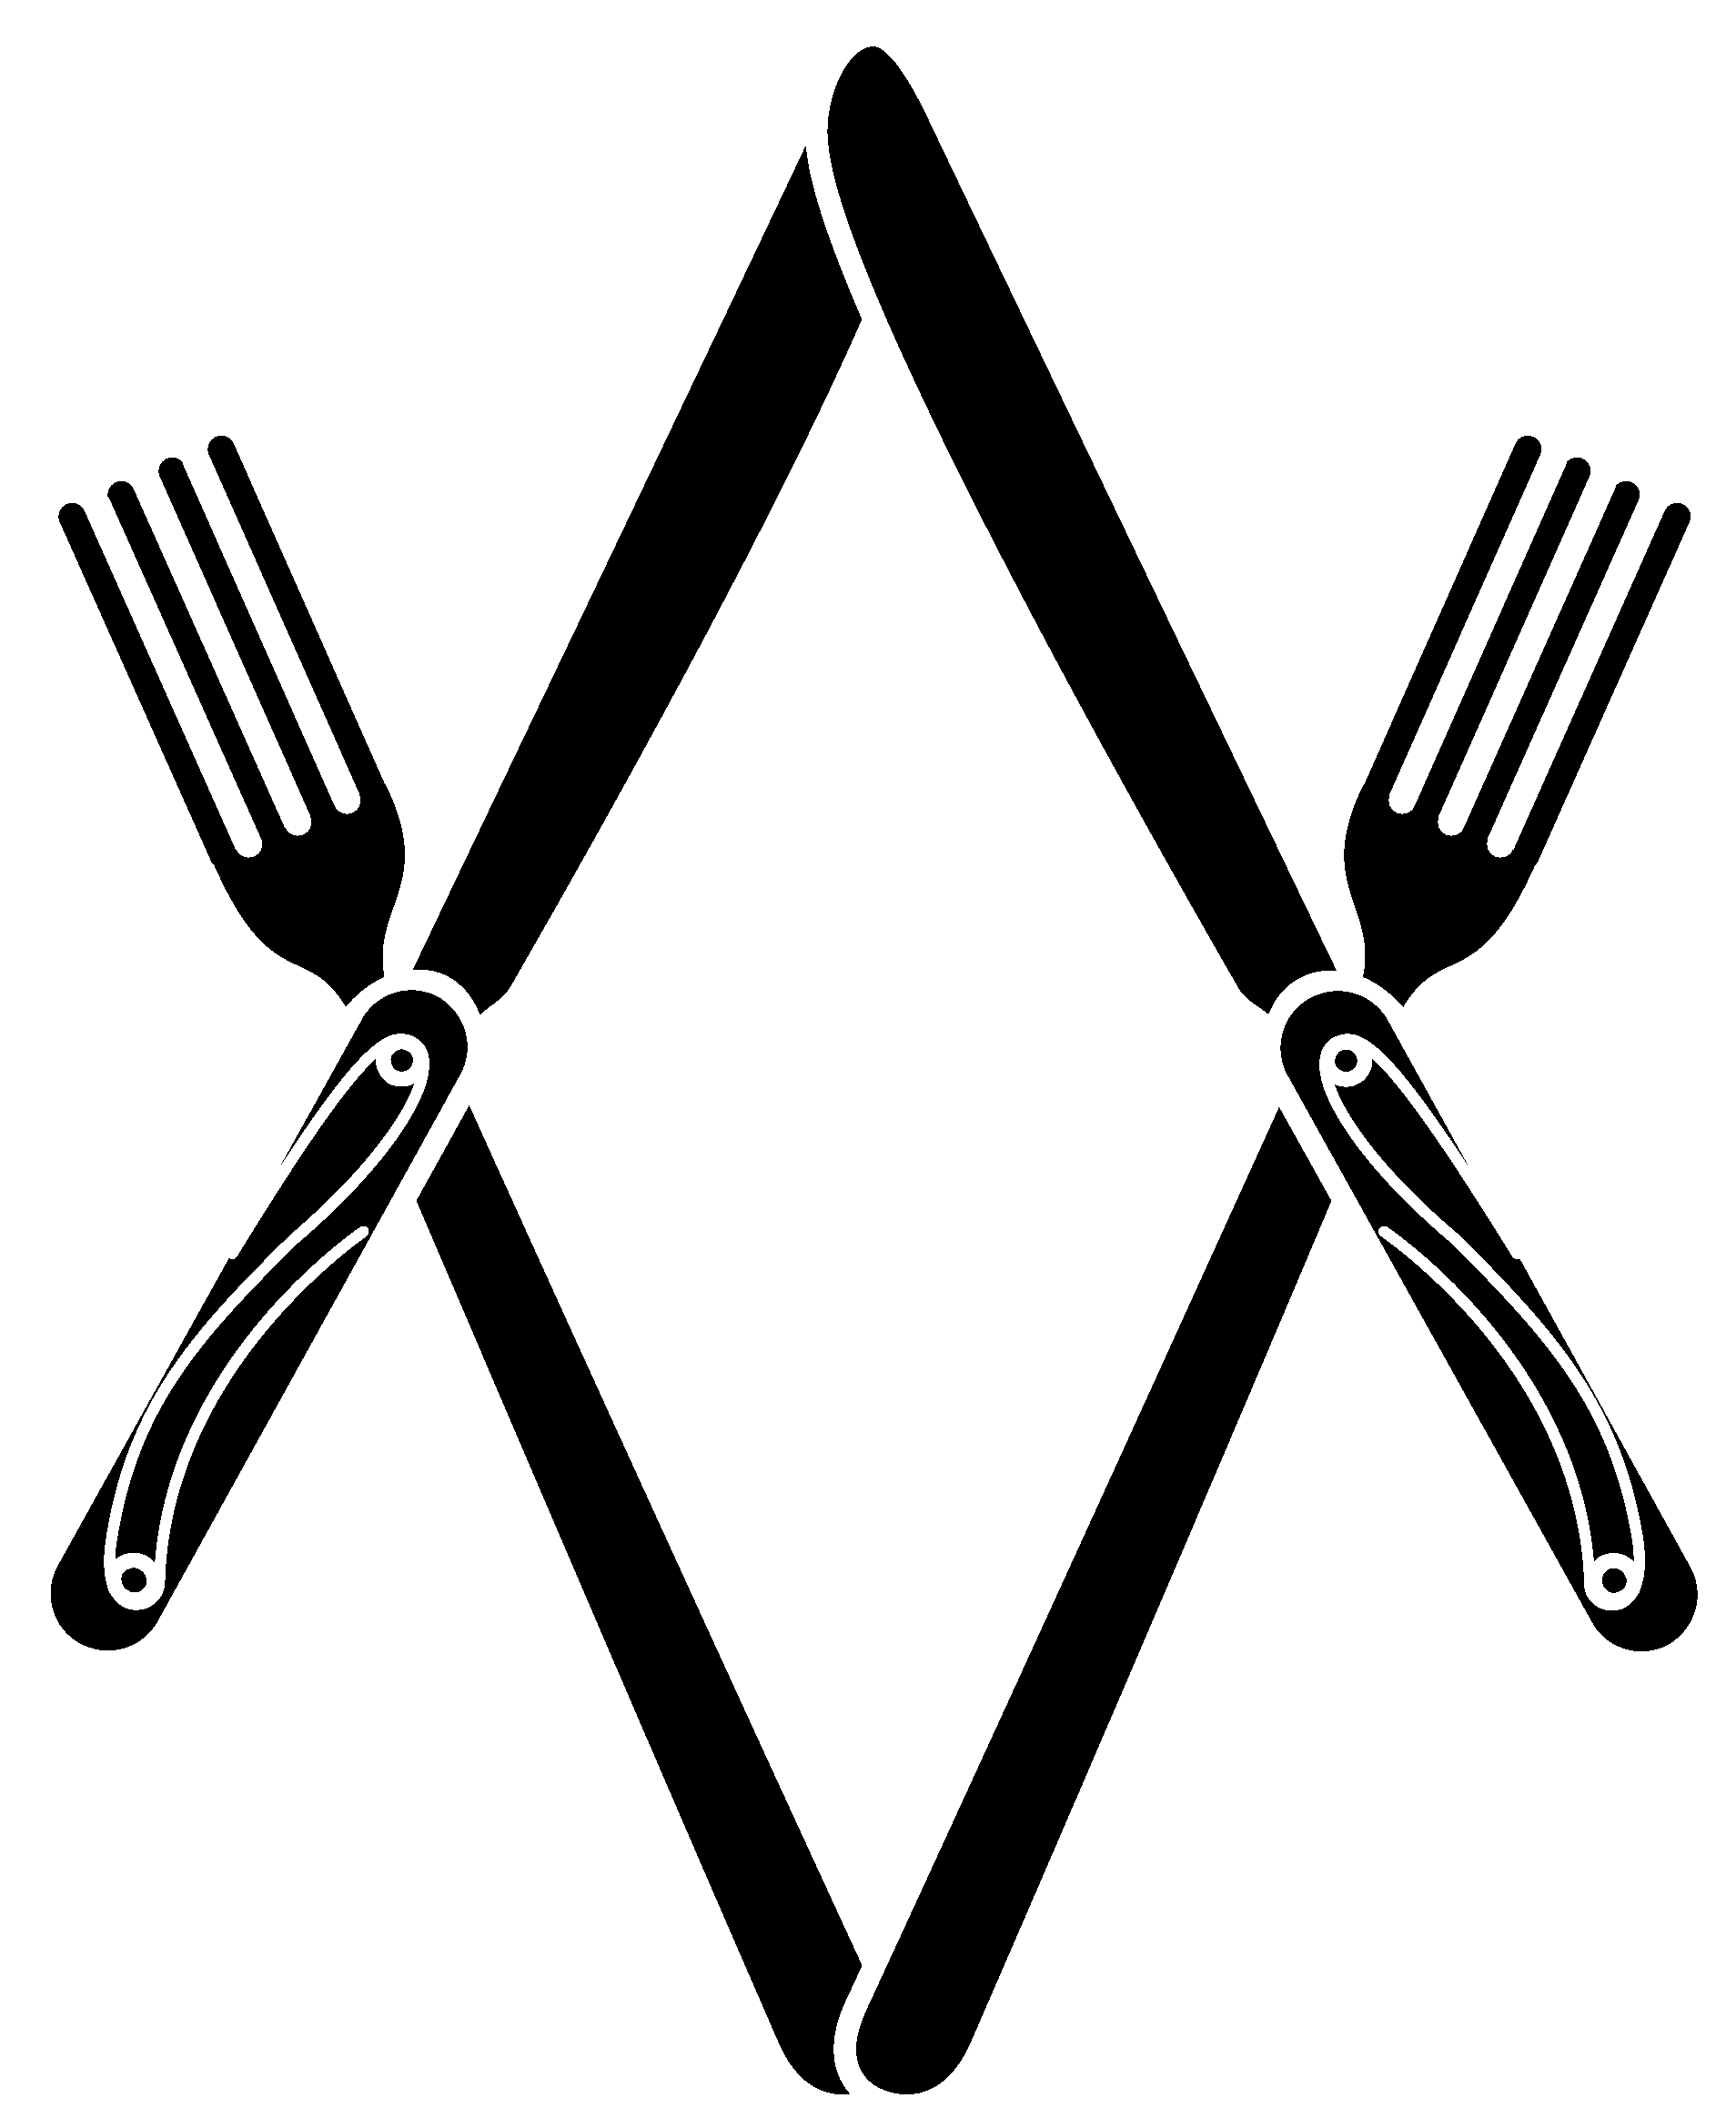 Knife and Fork degree